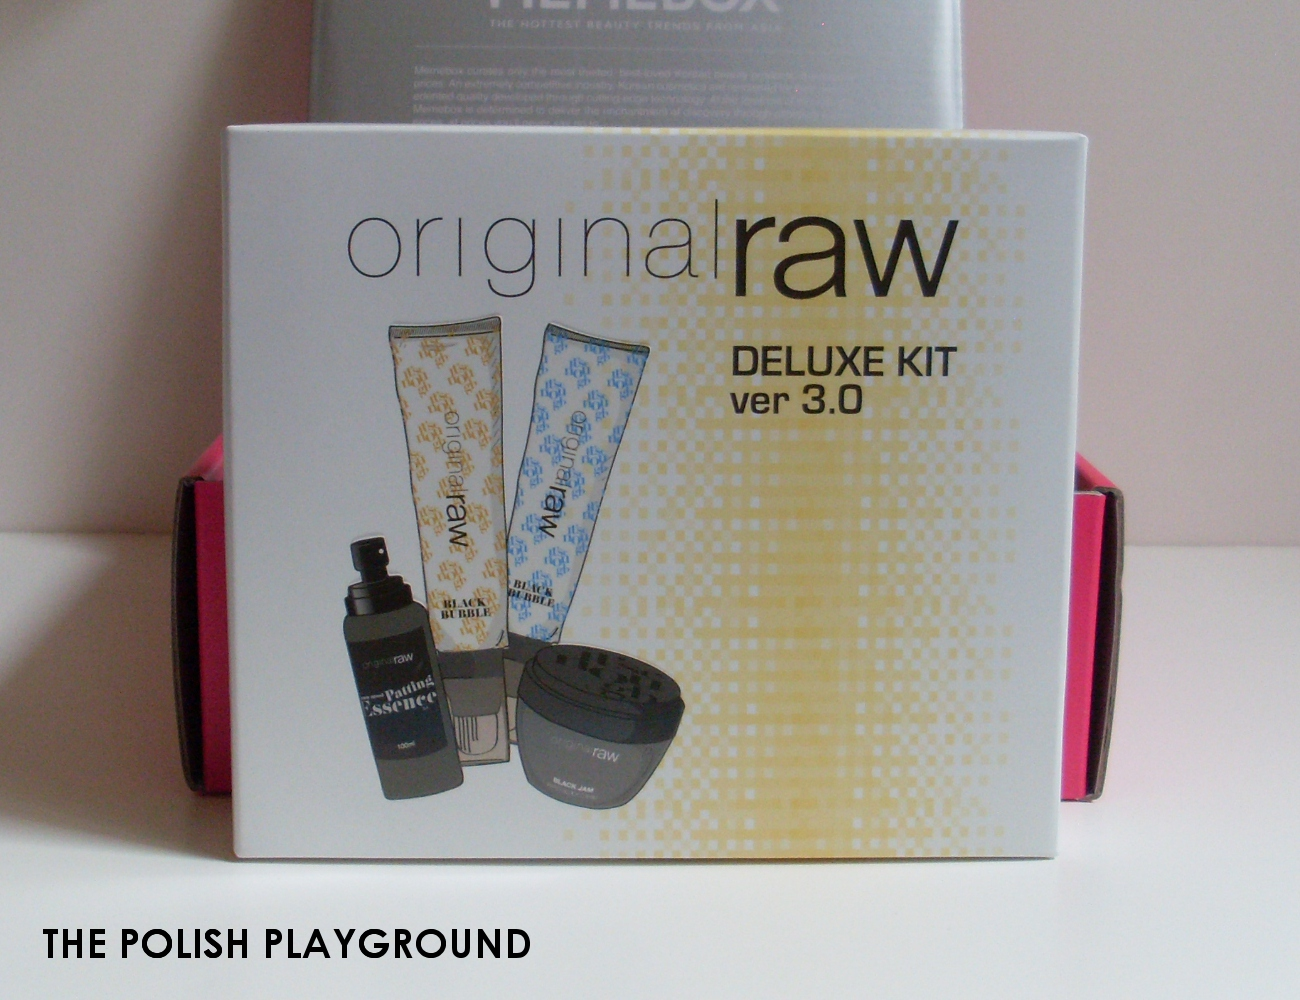 Memebox Special #35 Moisture Surge Unboxing - original raw Deluxe Kit Version 3.0